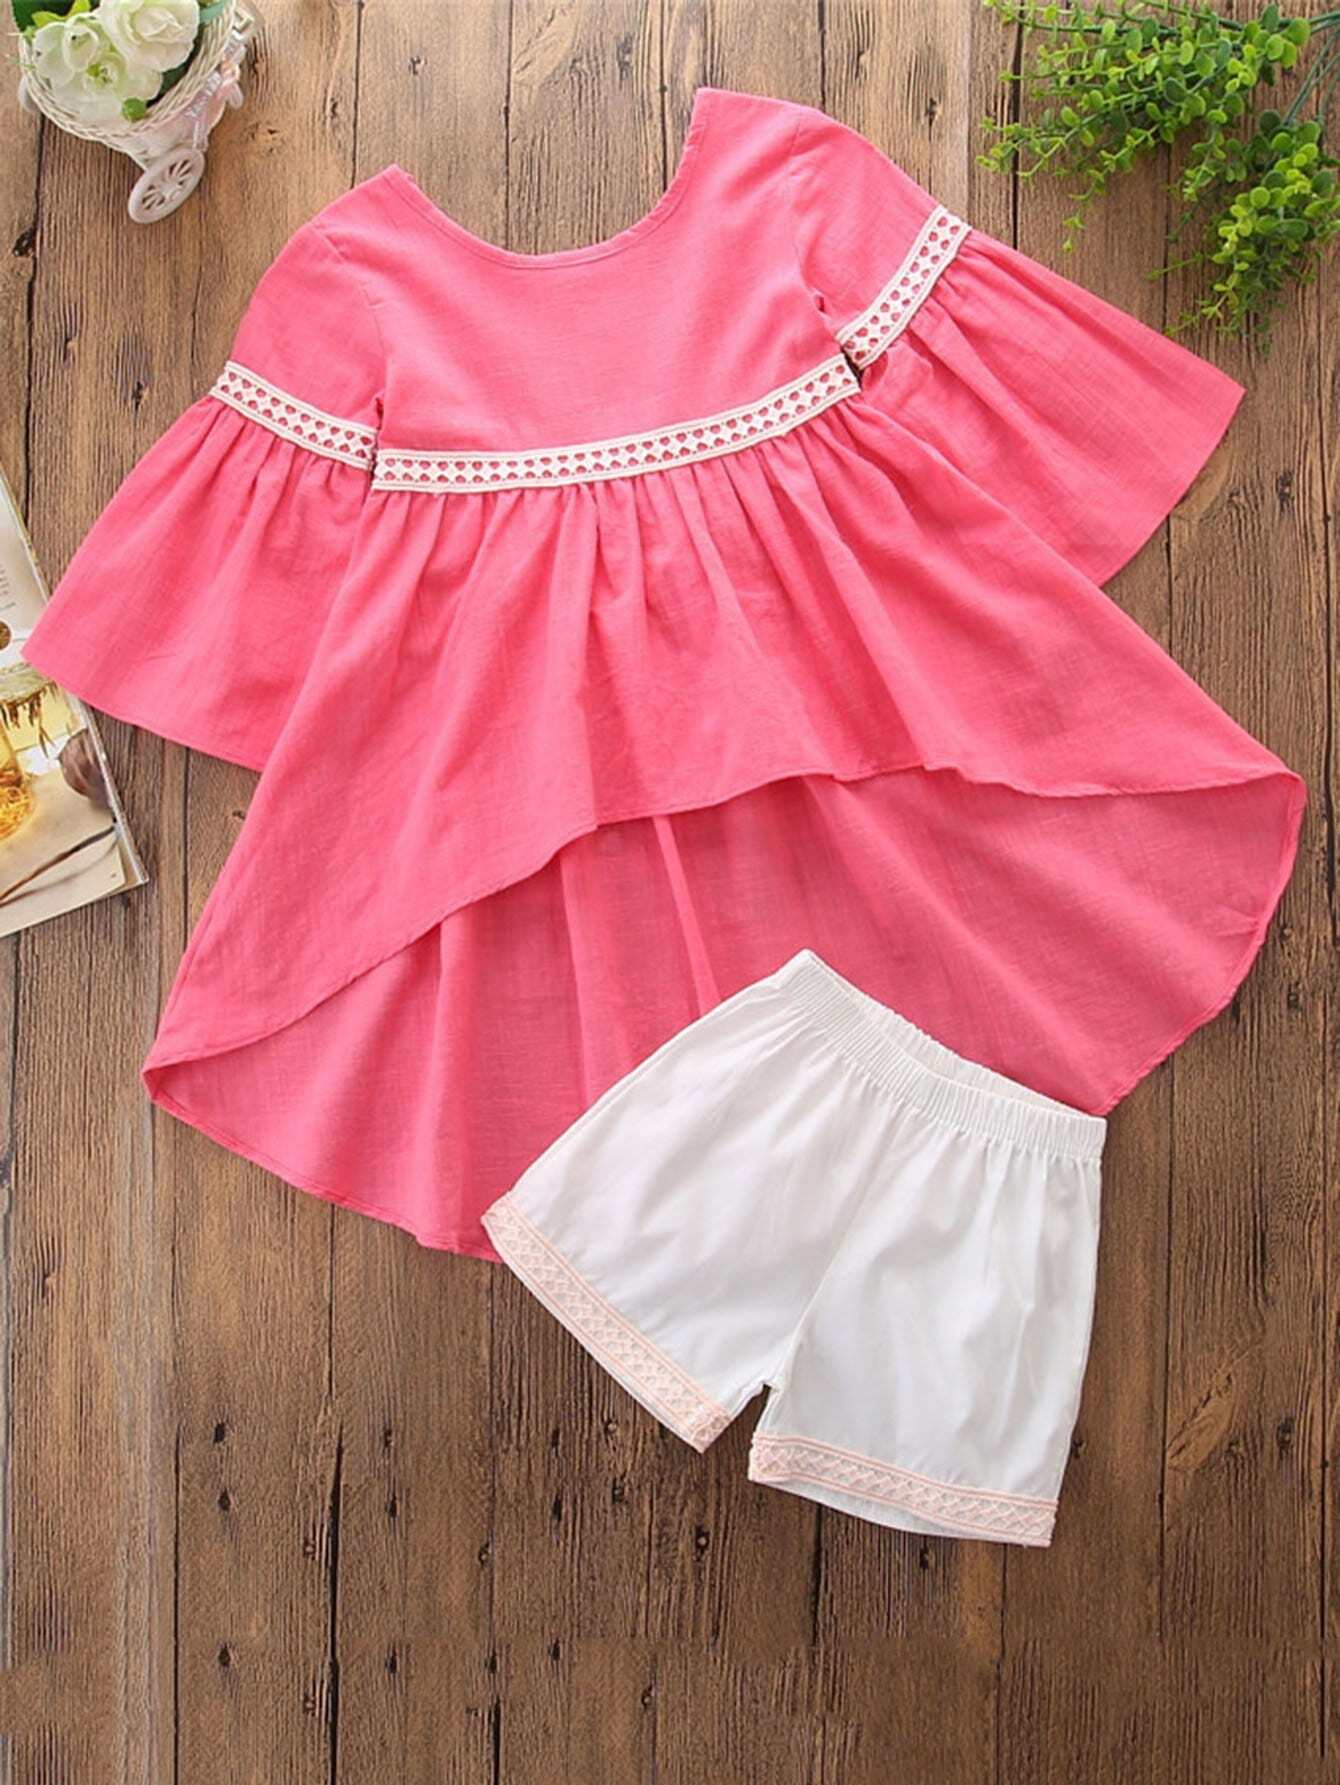 Lace Panel Dip Hem Top With Shorts lace panel hollow out top with shorts